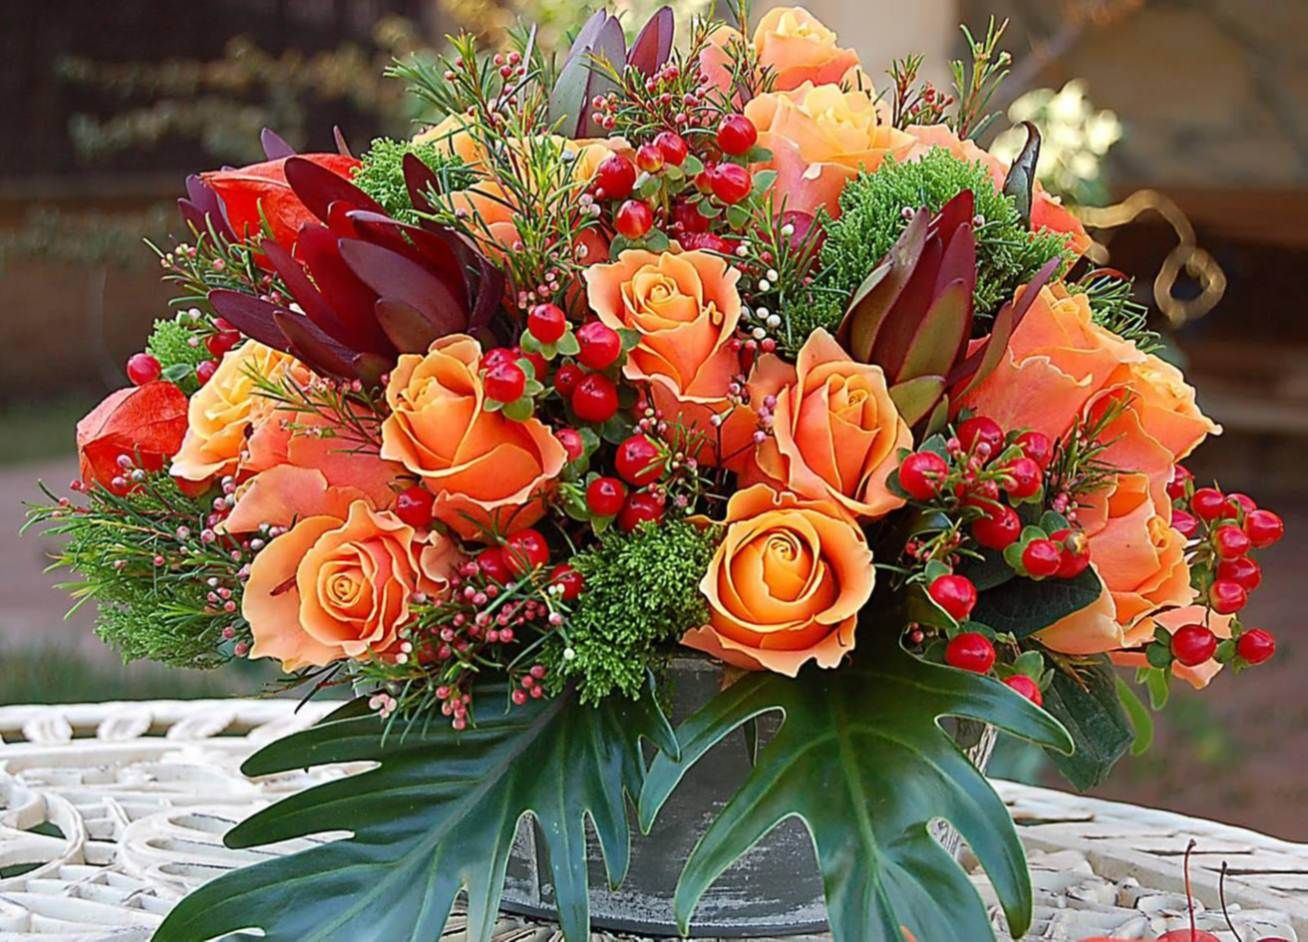 Floral Arrangements 67 best fall floral arrangements images on pinterest | fall floral